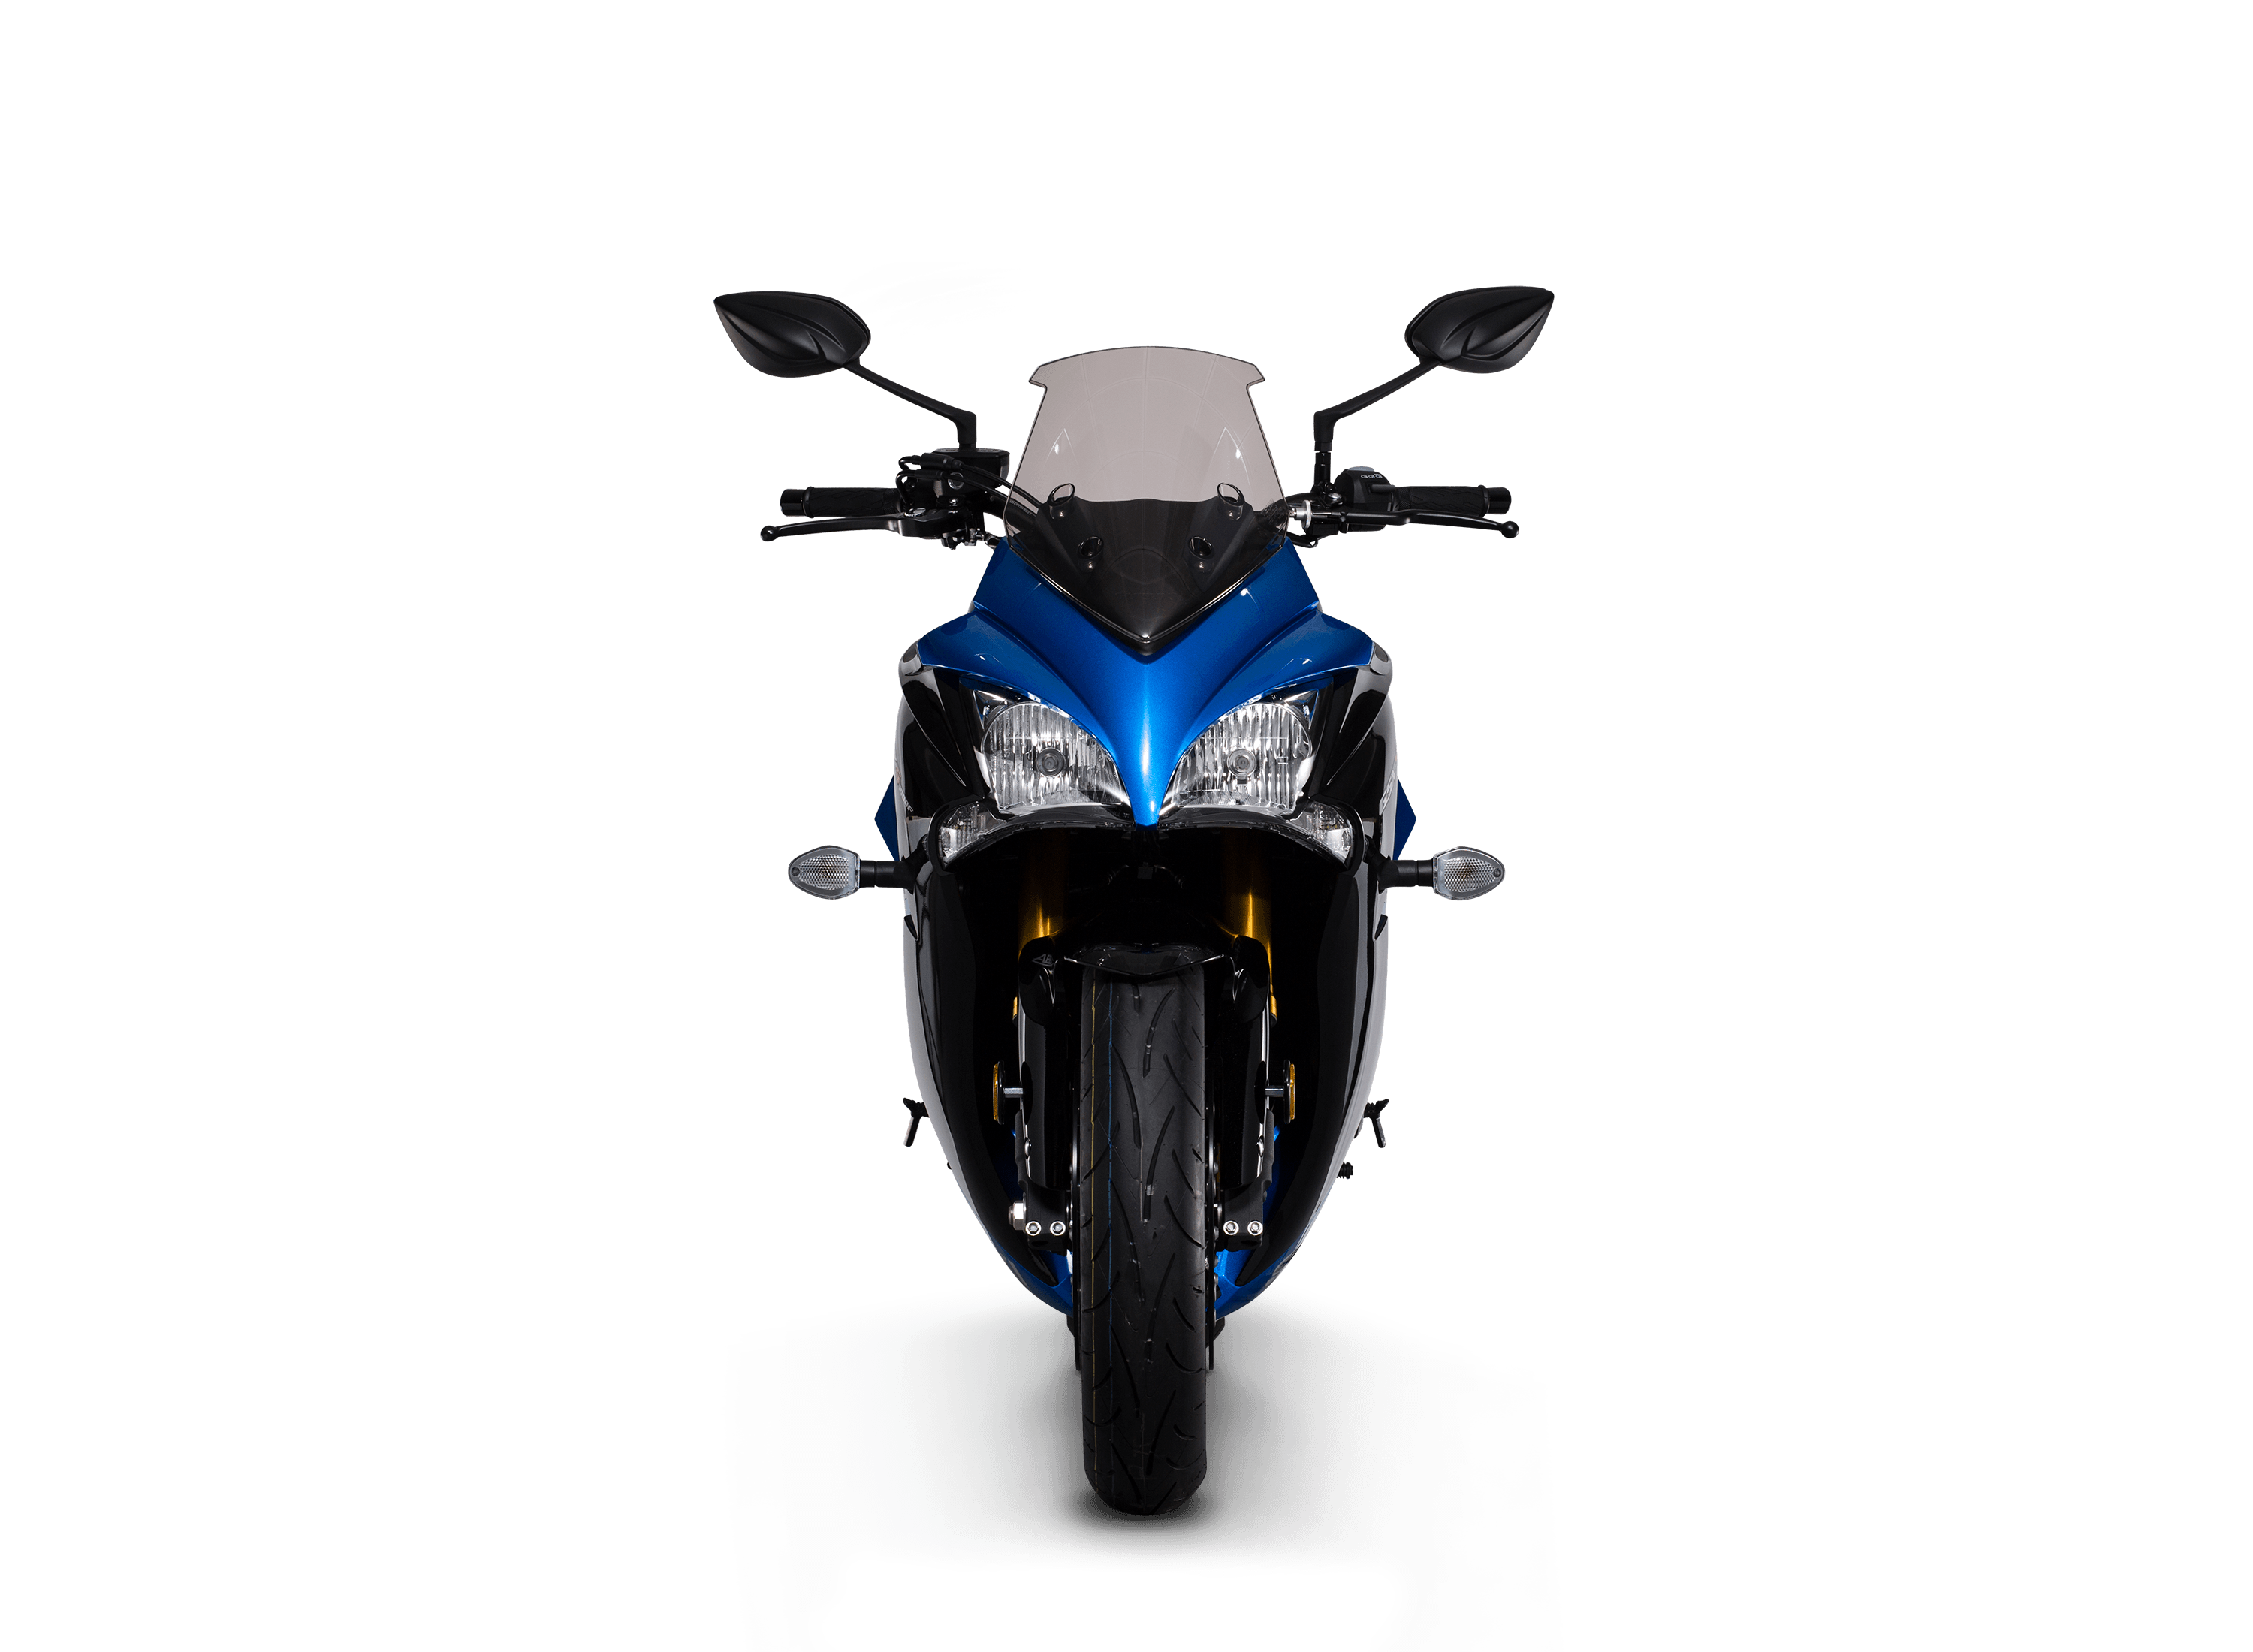 2018 suzuki gsx s1000f. beautiful 2018 gsxs1000f a comfortable package built for serious onroad pleasure meet  the road with legendary performance in 2018 suzuki gsx s1000f 8